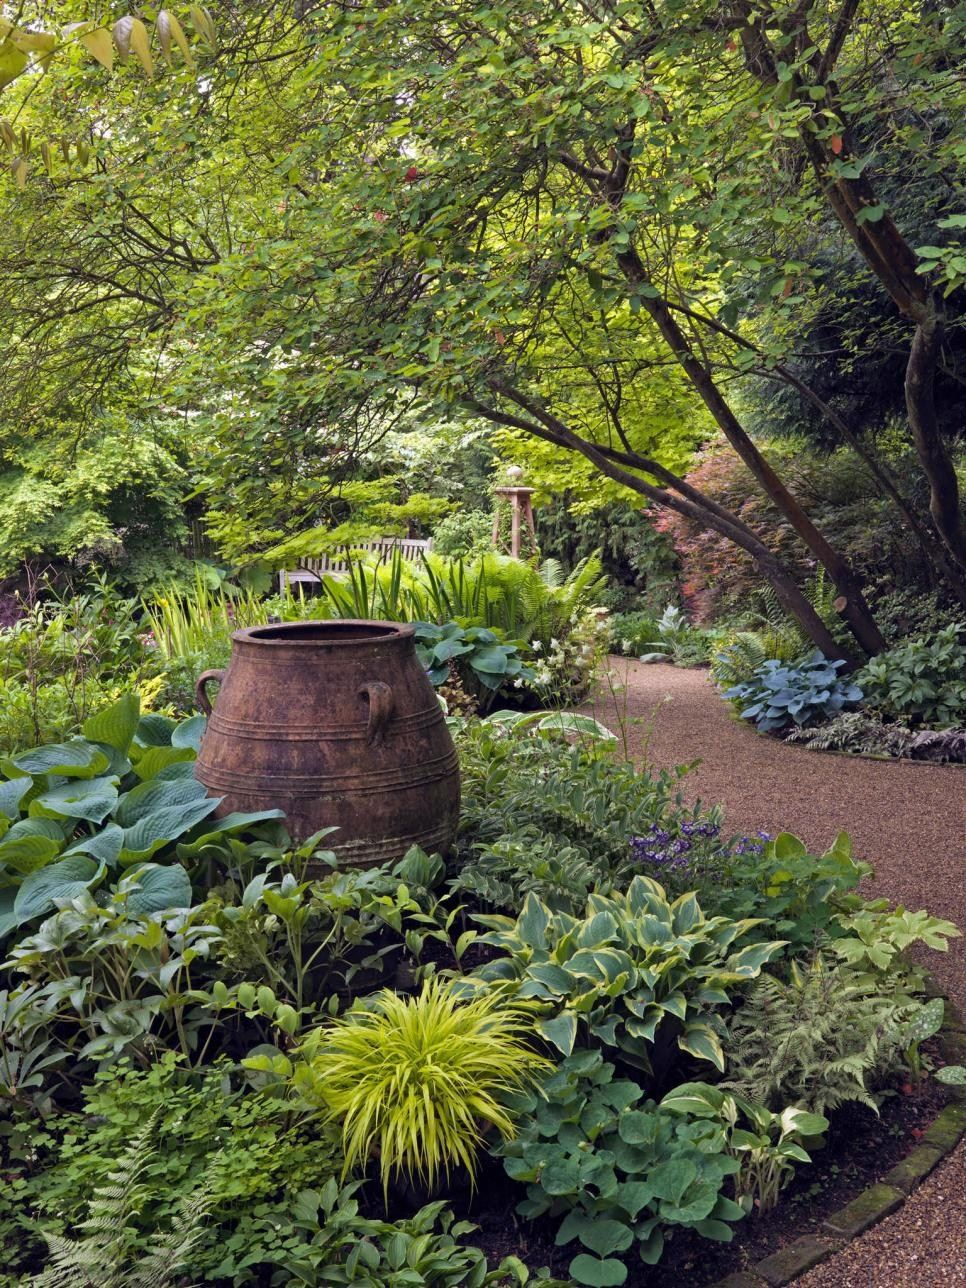 Natural garden landscape  Turn a shady spot into a lush thriving garden with plant picks and